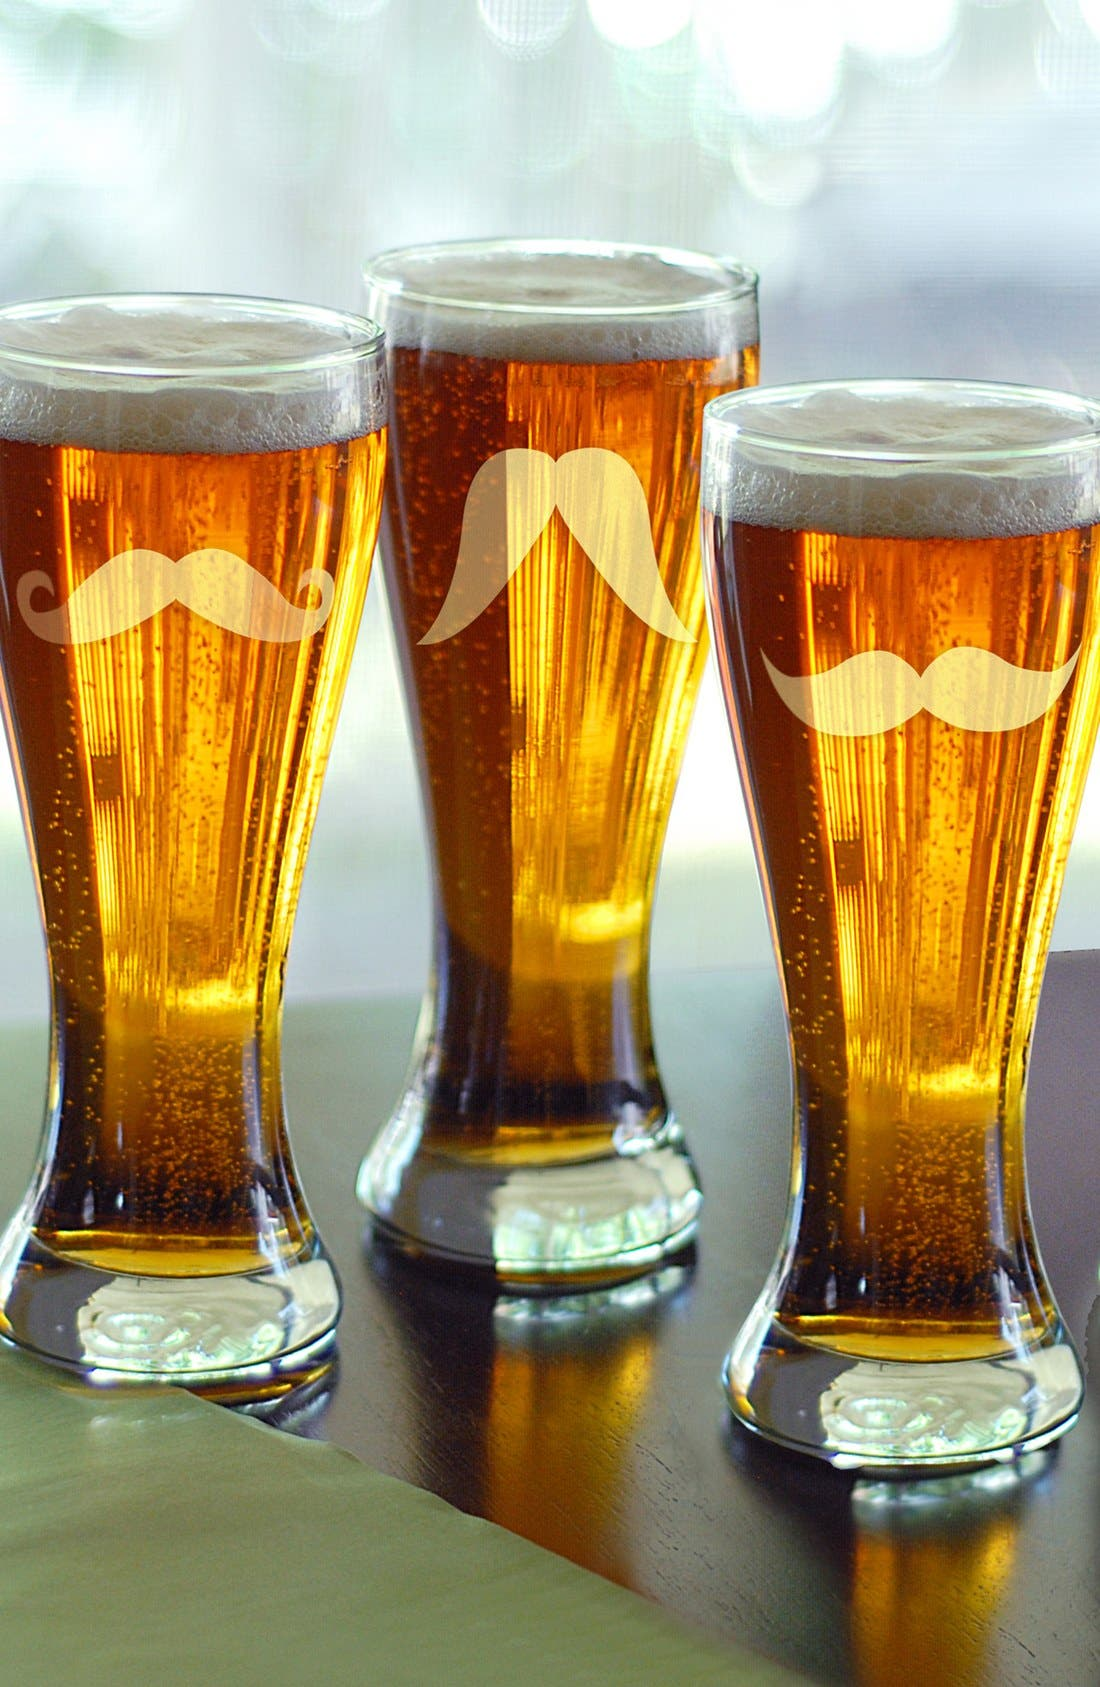 Main Image - Cathy's Concepts Mustache Pilsner Glasses (Set of 4)